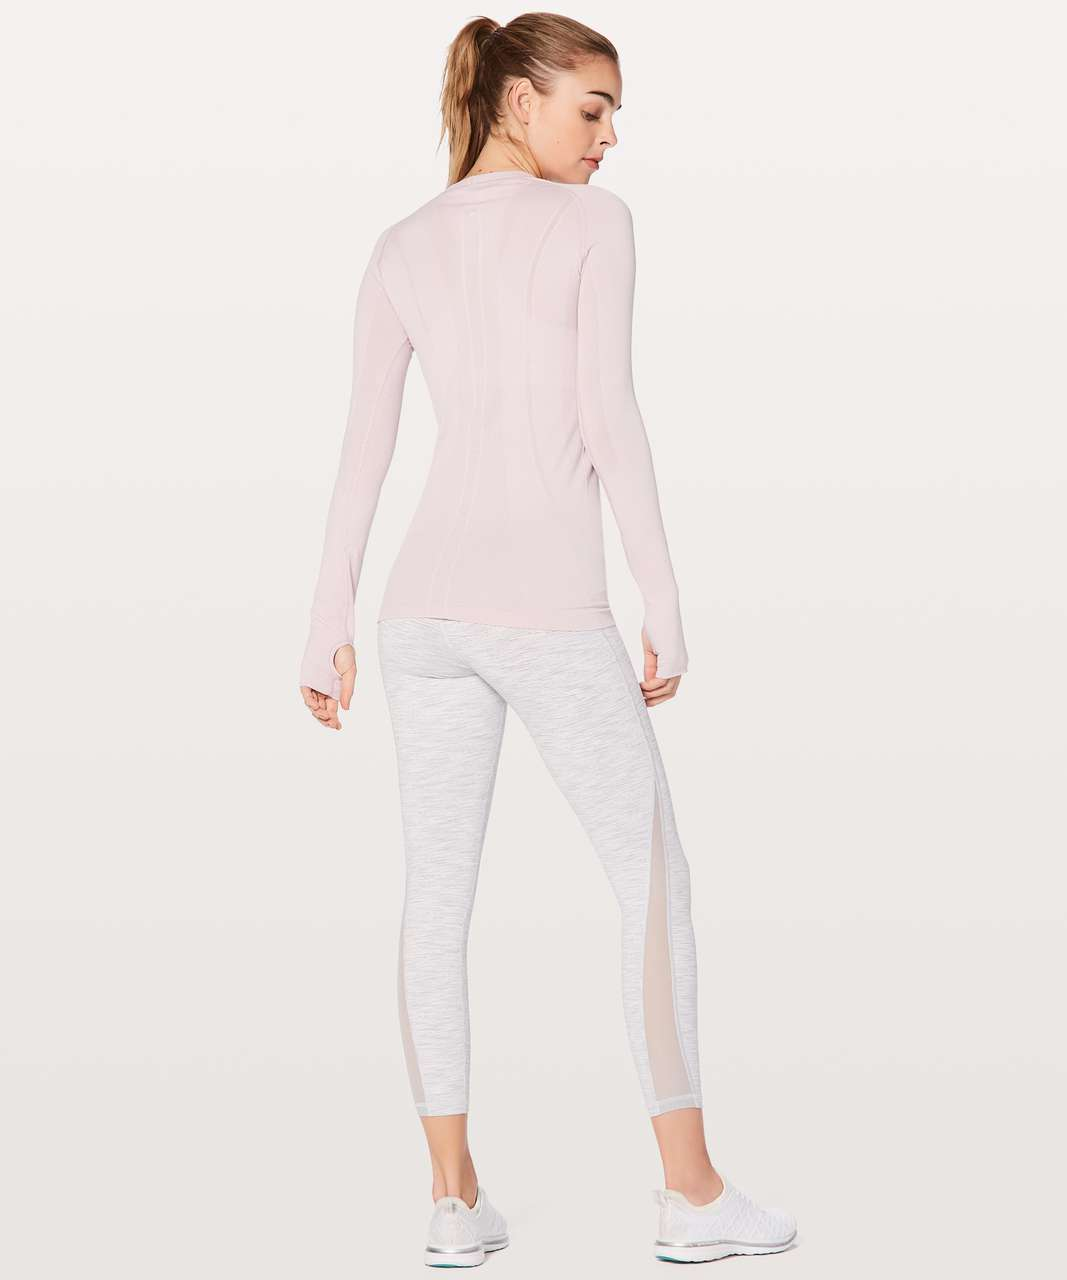 Lululemon Swiftly Tech Long Sleeve Crew - Porcelain Pink